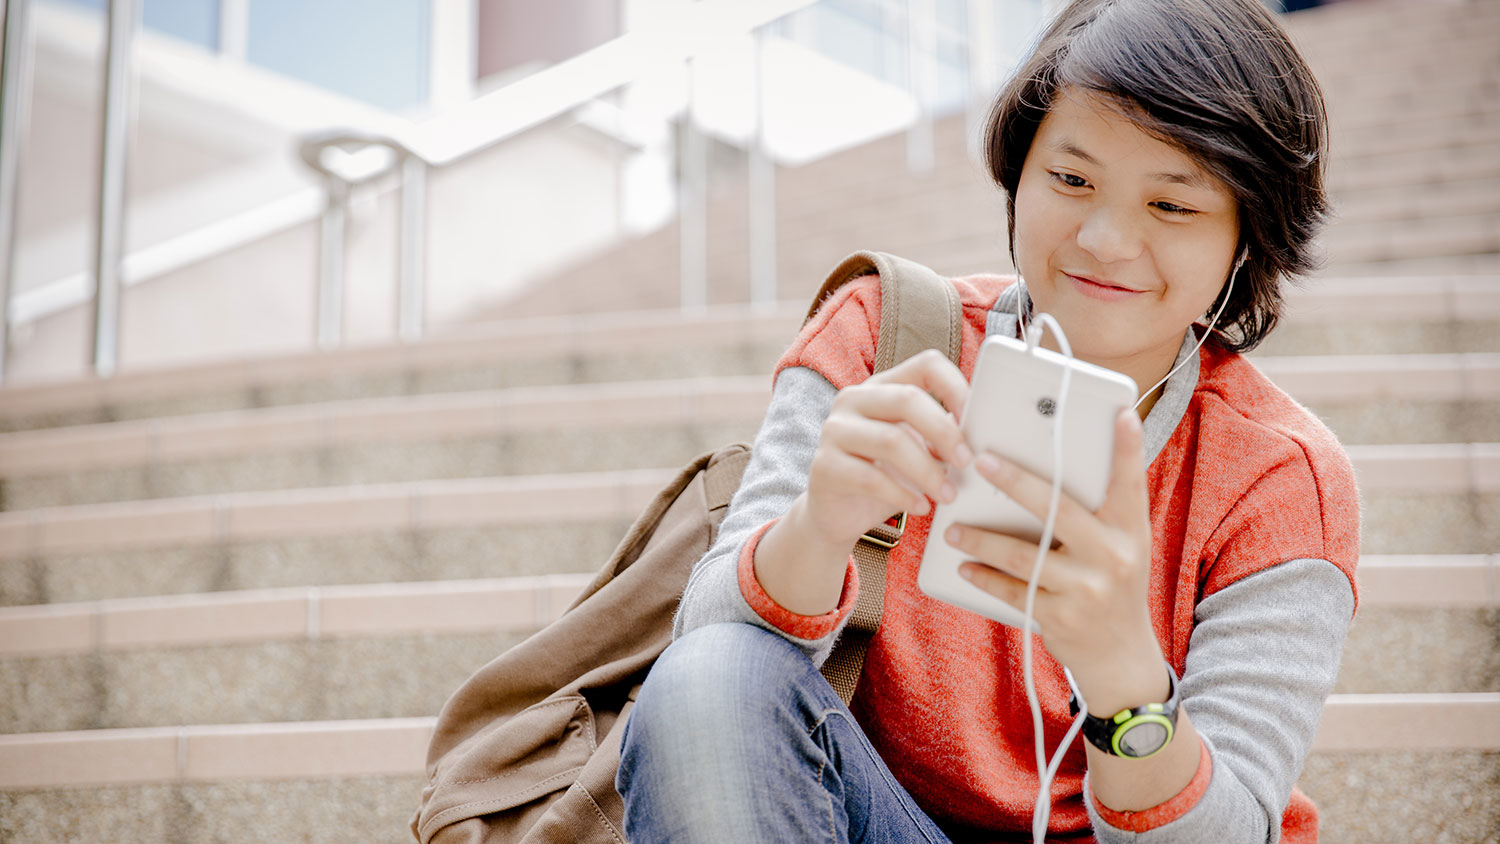 Young Asian woman looking at phone